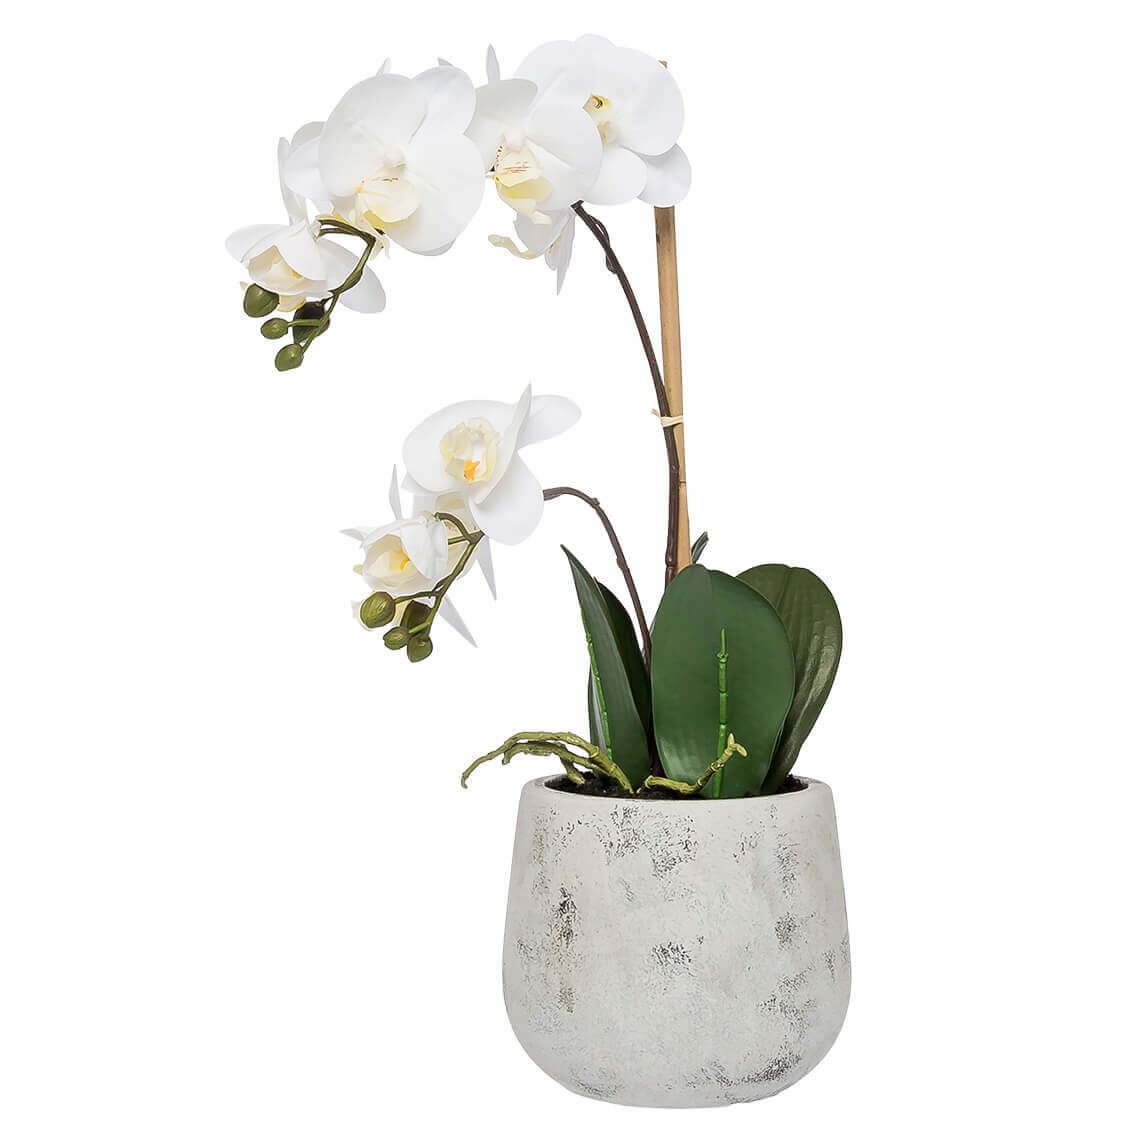 Phalaenopsis Potted Orchid Size W 28cm x D 18cm x H 56cm in White Plastic/Fabric/Wire Freedom by Freedom, a Plants for sale on Style Sourcebook